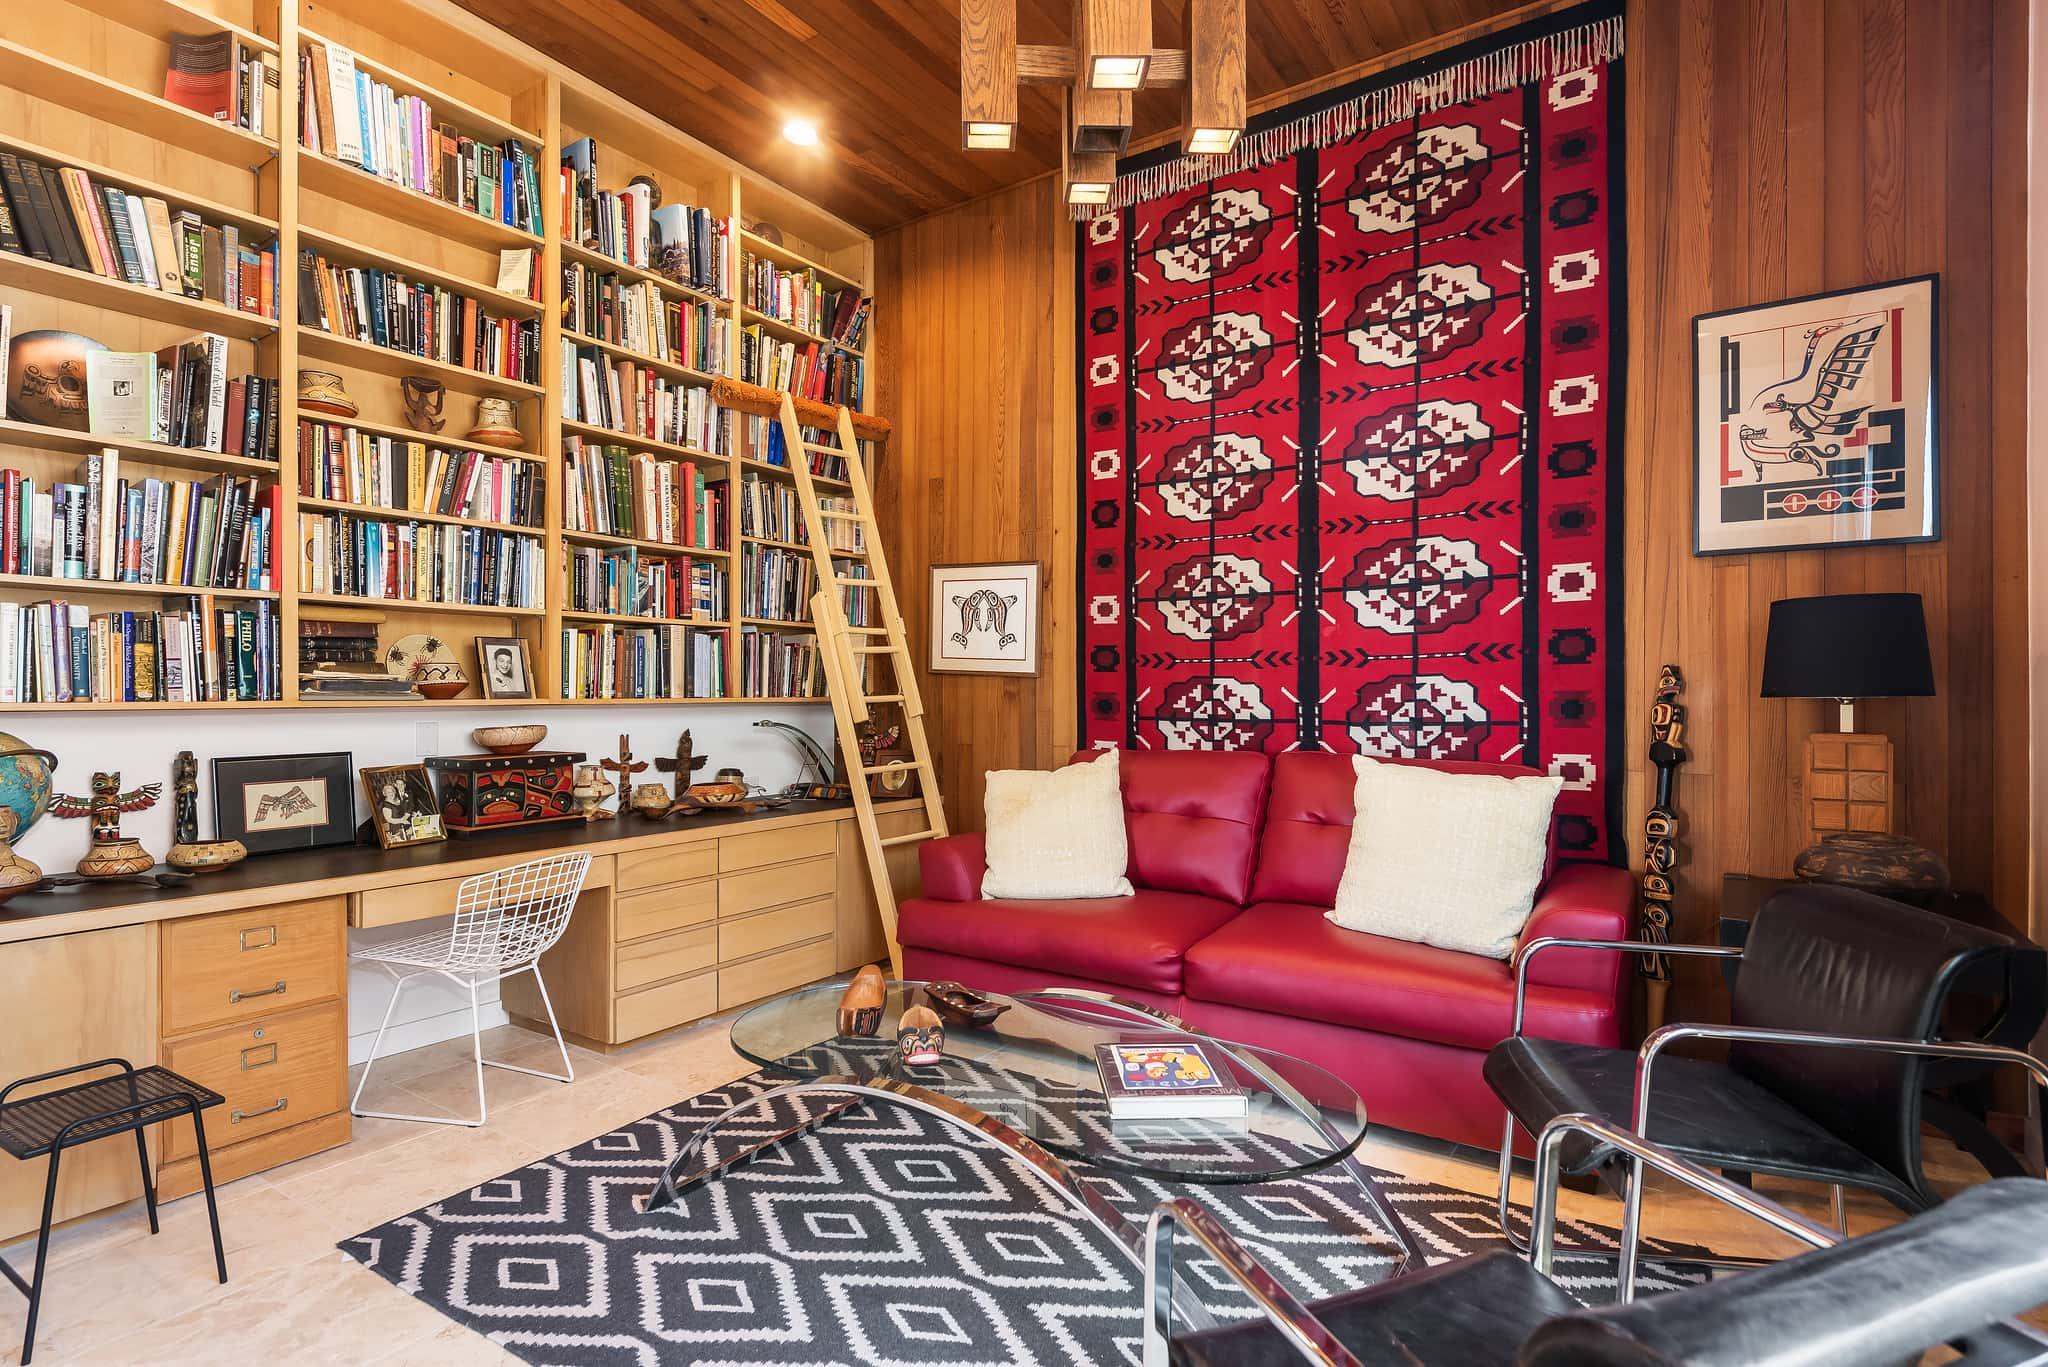 Home library with wall of bookshelves and hanging tapestry.